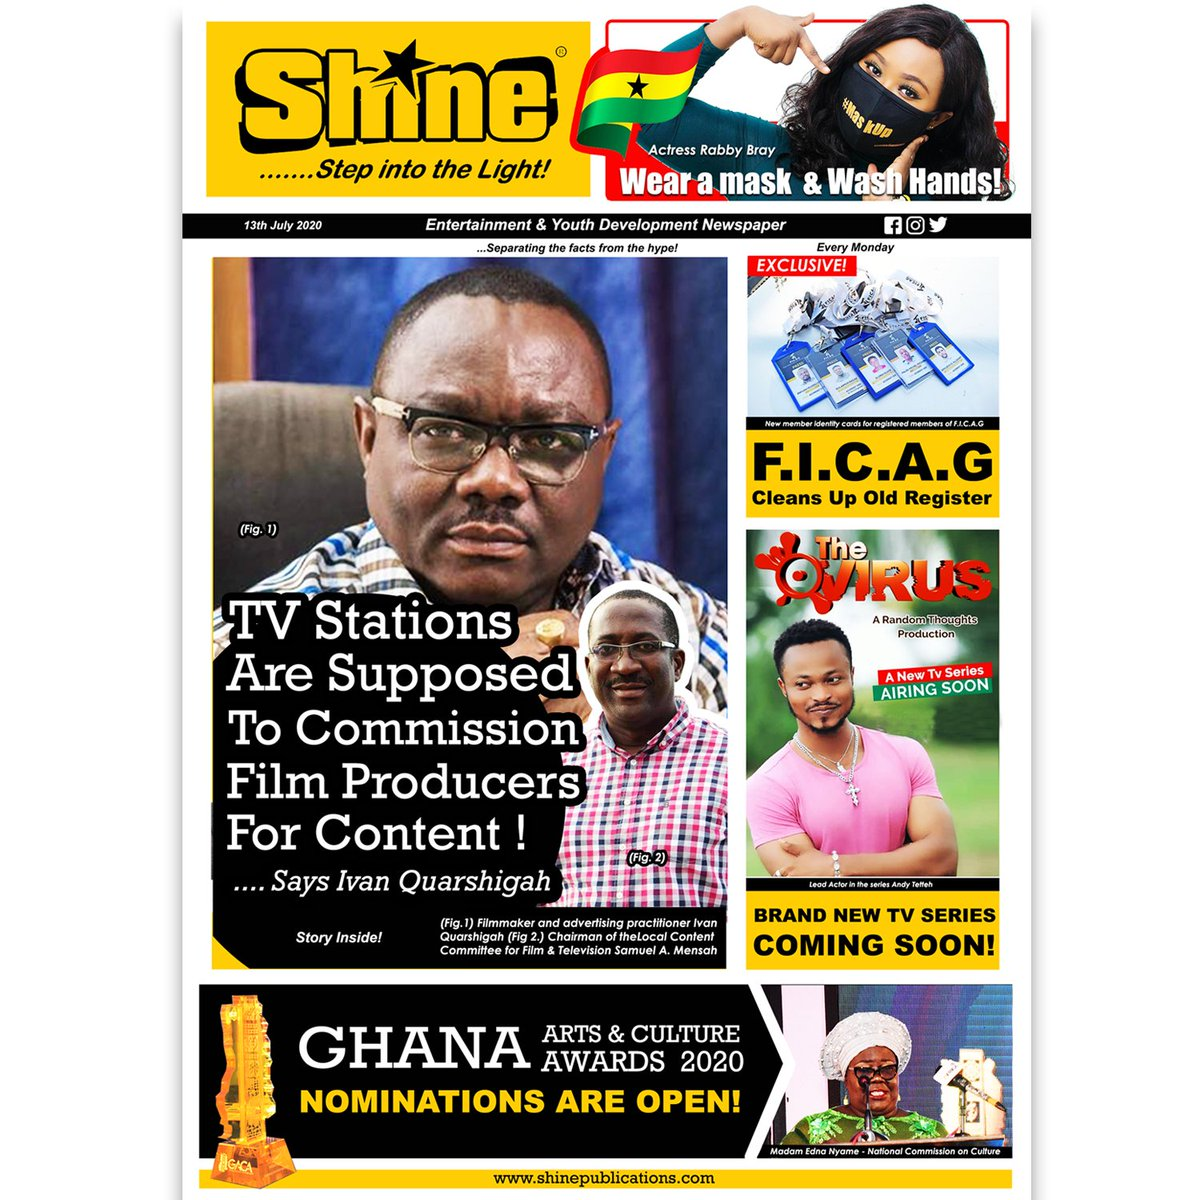 Mondays mean serious business! So, visit our website today for some serious stories!  #shinepublications #Ghana #abnghana #alcoholban #BB2020Tvi #filmmaker #creativearts #MCFC #rabbybray #wearmasks#ficag #tvstation #filmproducer  #localcontentcommittee @NAkufoAddo #Covid_19pic.twitter.com/XL6rSqGSAe